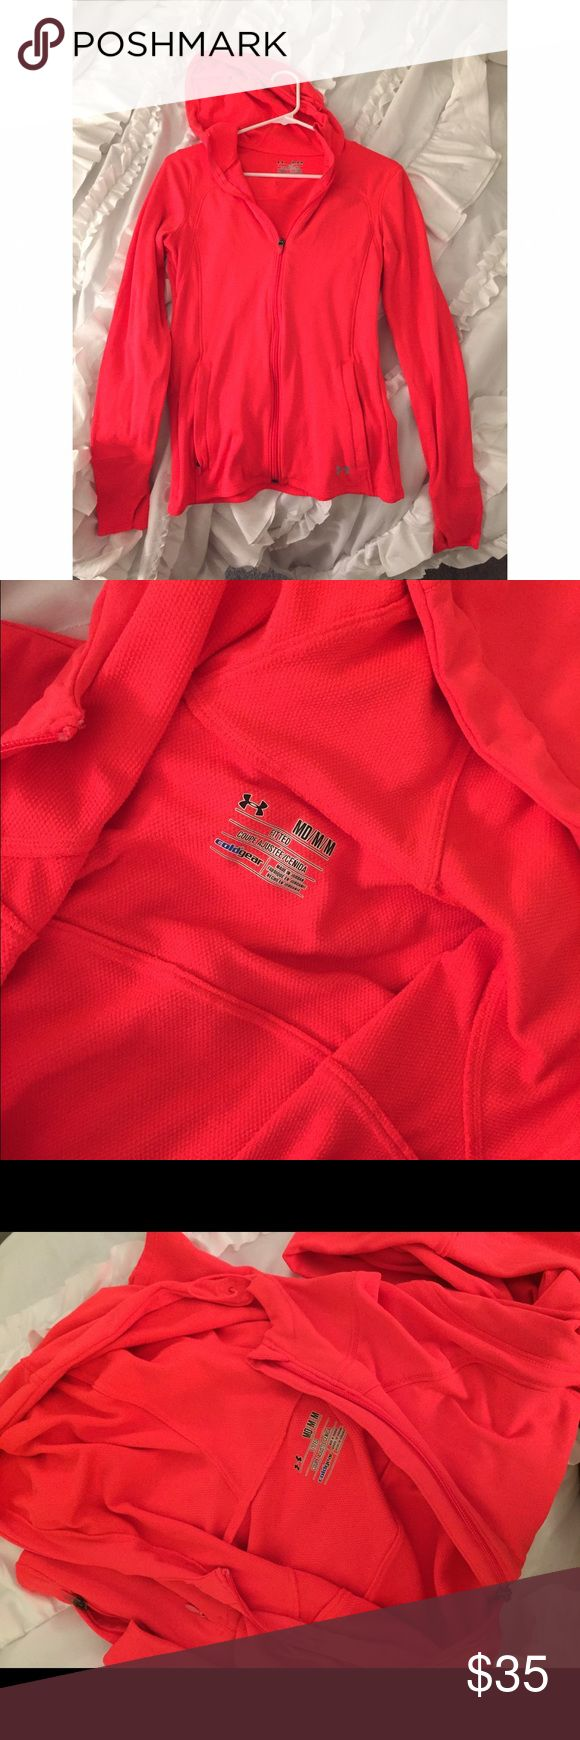 "under armour neon coral coldgear jacket under armour neon pink/ coral jacket, ""coldgear"", size medium! super soft and stretchy, ""fitted"" fit, with a hood, large pockets and thumb holes. great condition, I just have way too much workout gear 🏃🏻‍♀️ perfect for running or layering in chilly weather! Under Armour Jackets & Coats"